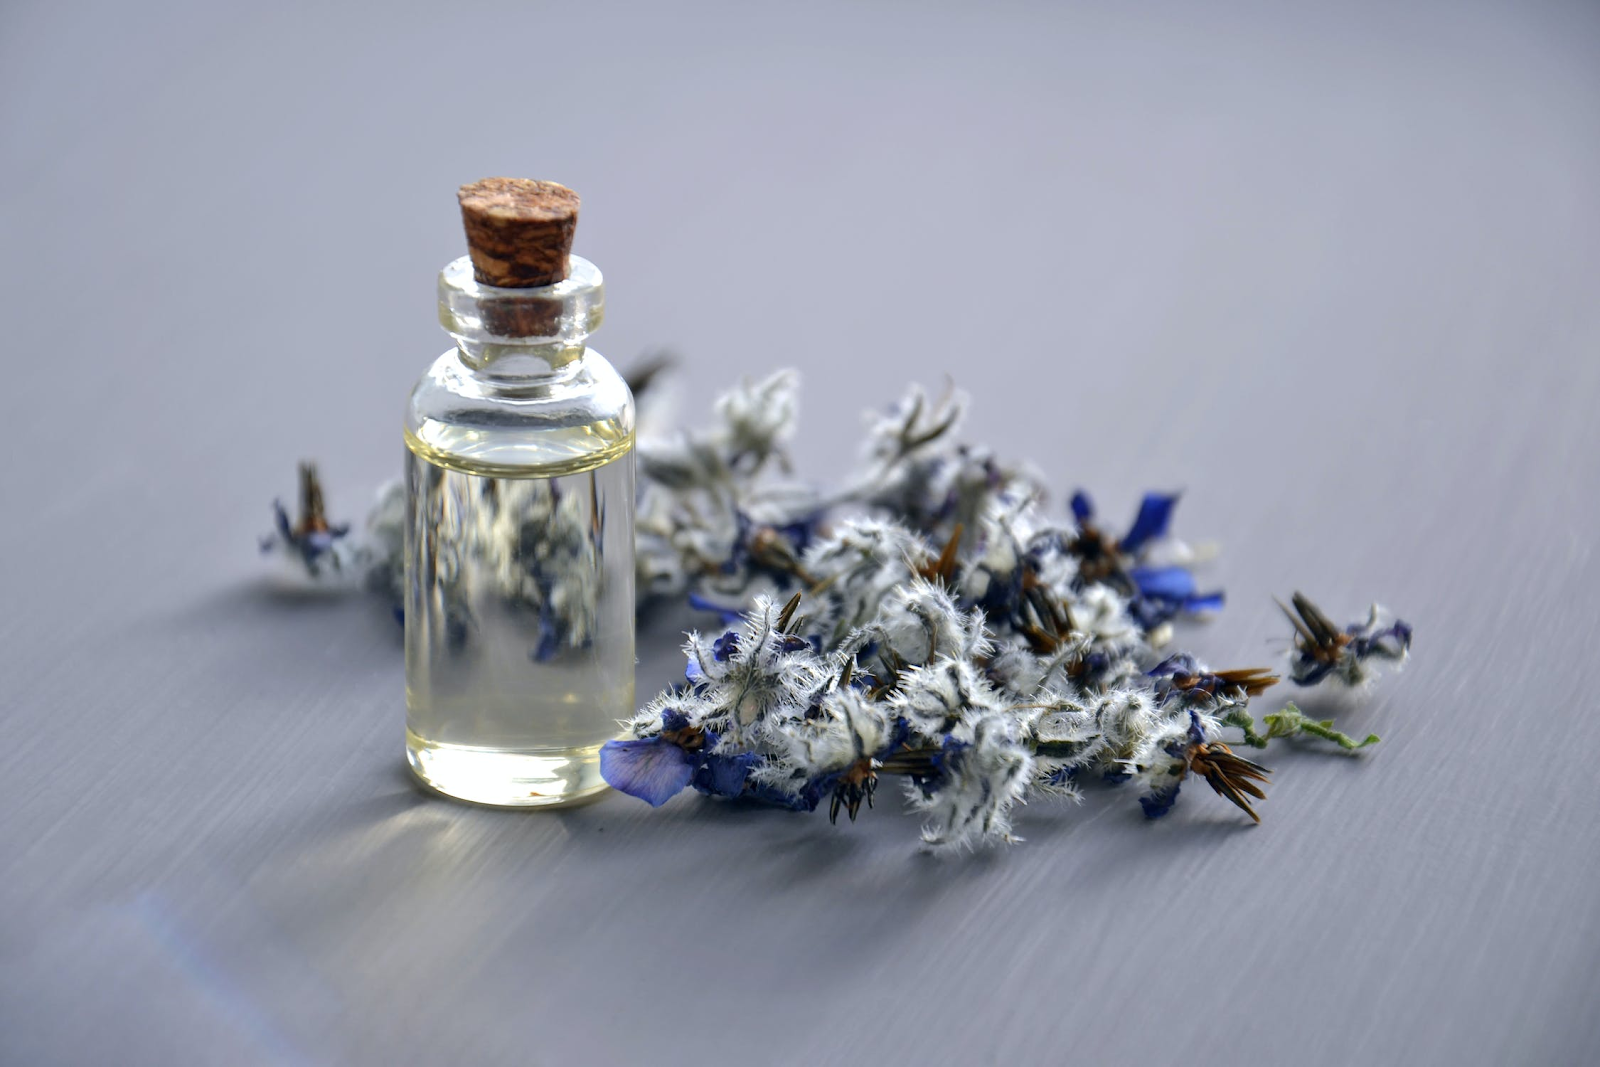 Essential oil made from flowers